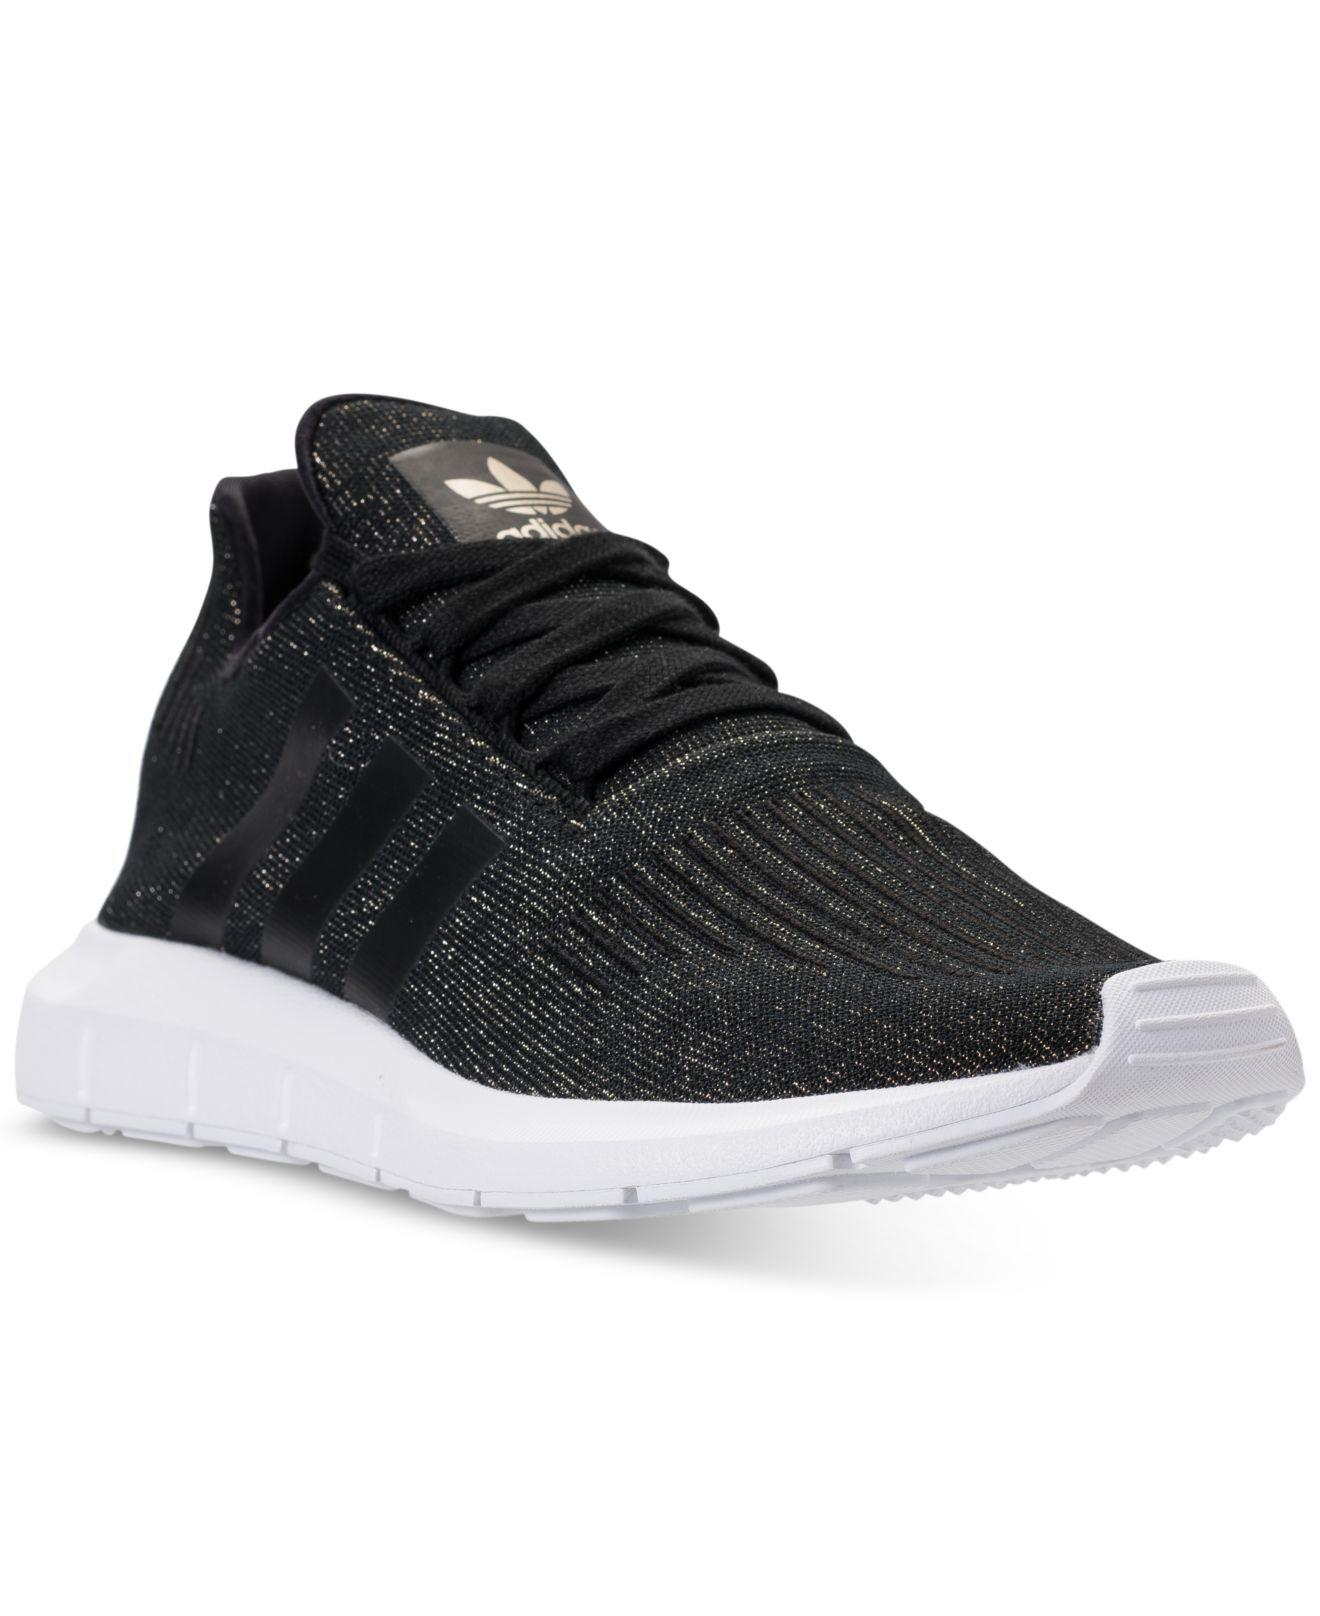 7485a6de3 Lyst - adidas Women s Swift Run Casual Sneakers From Finish Line in ...